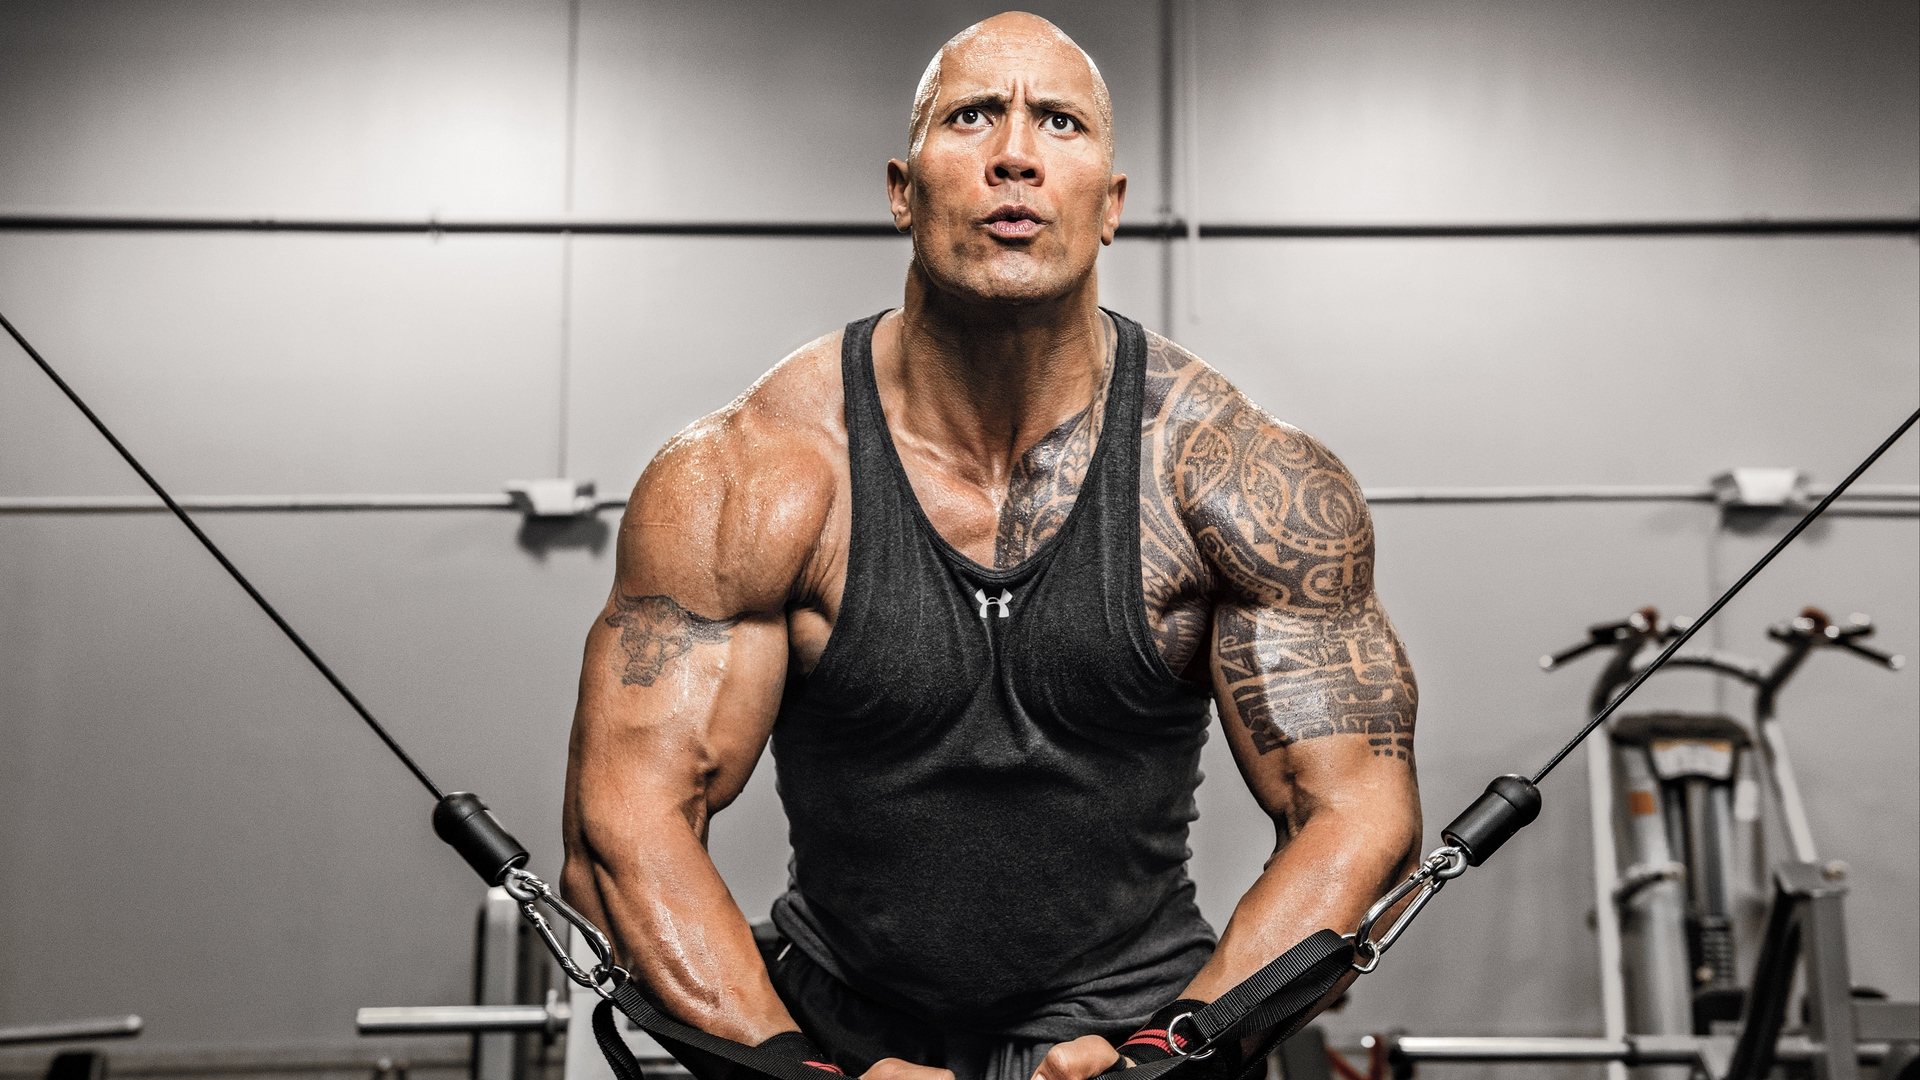 Top 10 Best Chest Workouts for Building Awesome Pecs (According to Science)